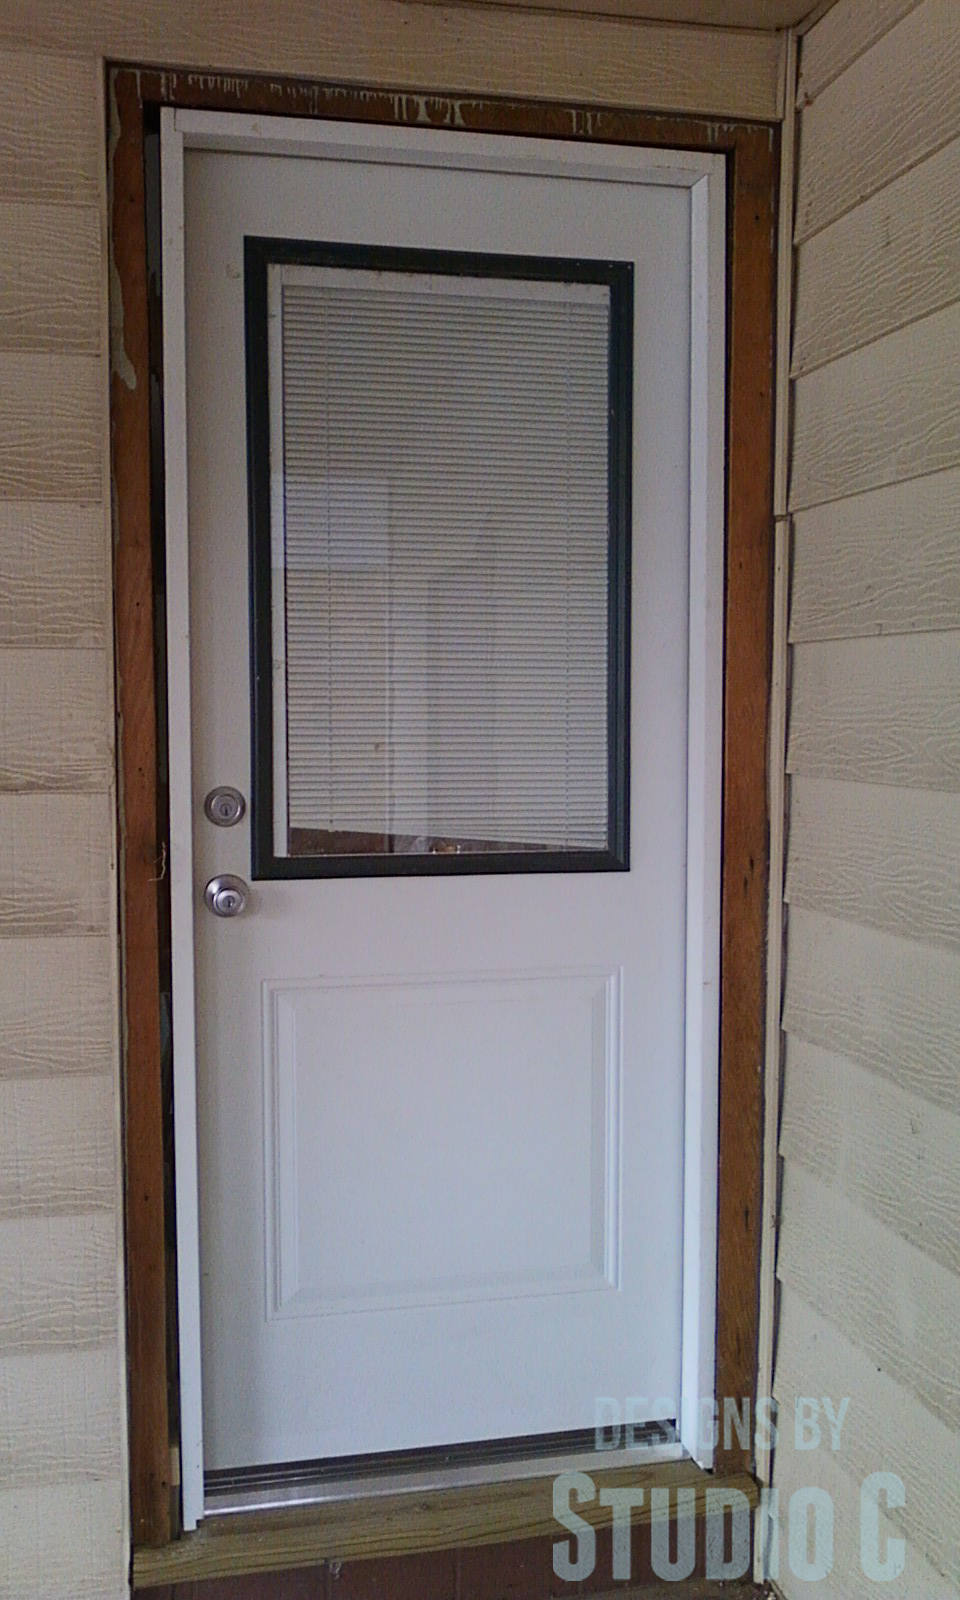 Replacing an exterior door designs by studio c for Entry door with window